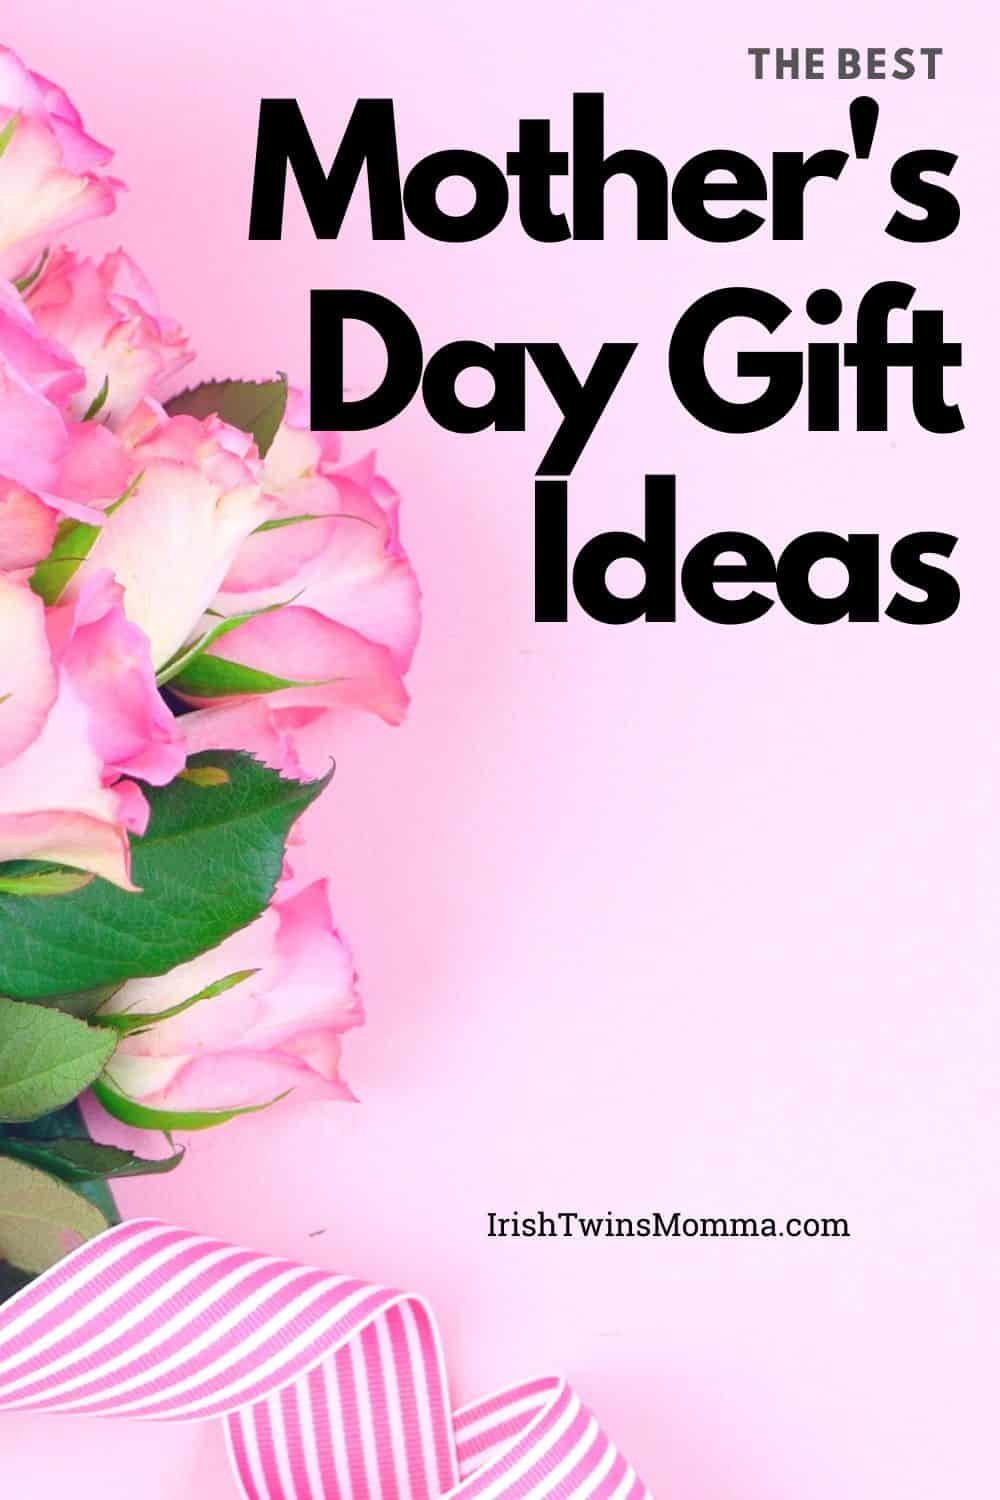 The best mothers day gift ideas for the special women in your life that include beauty, fashion, coffee, wine, and more. via @irishtwinsmom11